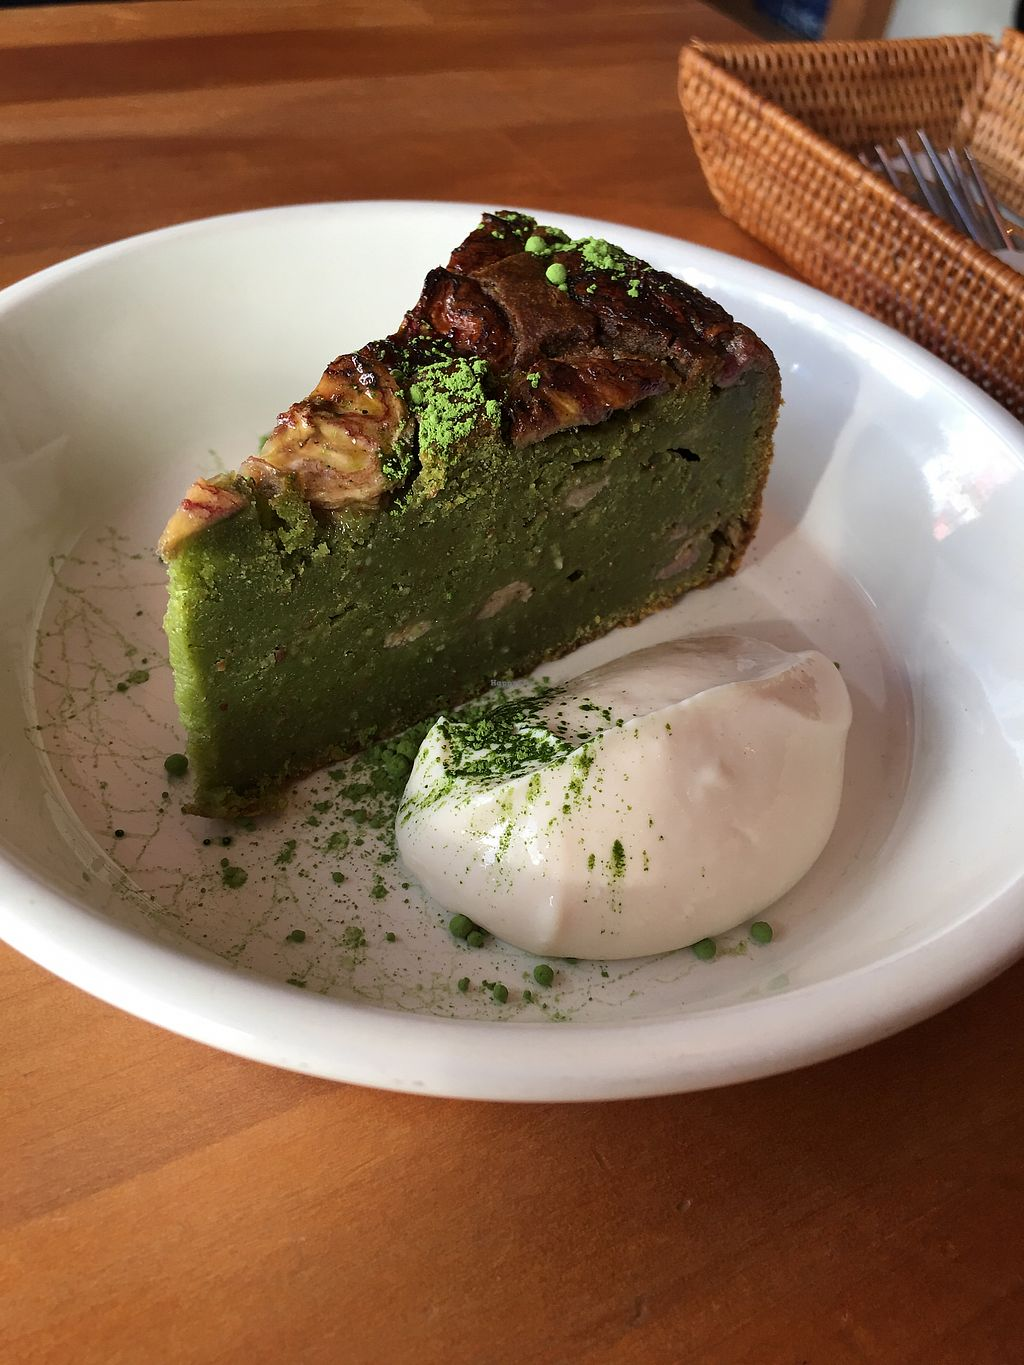 "Photo of Cafe Atl  by <a href=""/members/profile/KisaraVera"">KisaraVera</a> <br/>Matcha Cake! ✨?? <br/> December 25, 2017  - <a href='/contact/abuse/image/25368/338936'>Report</a>"